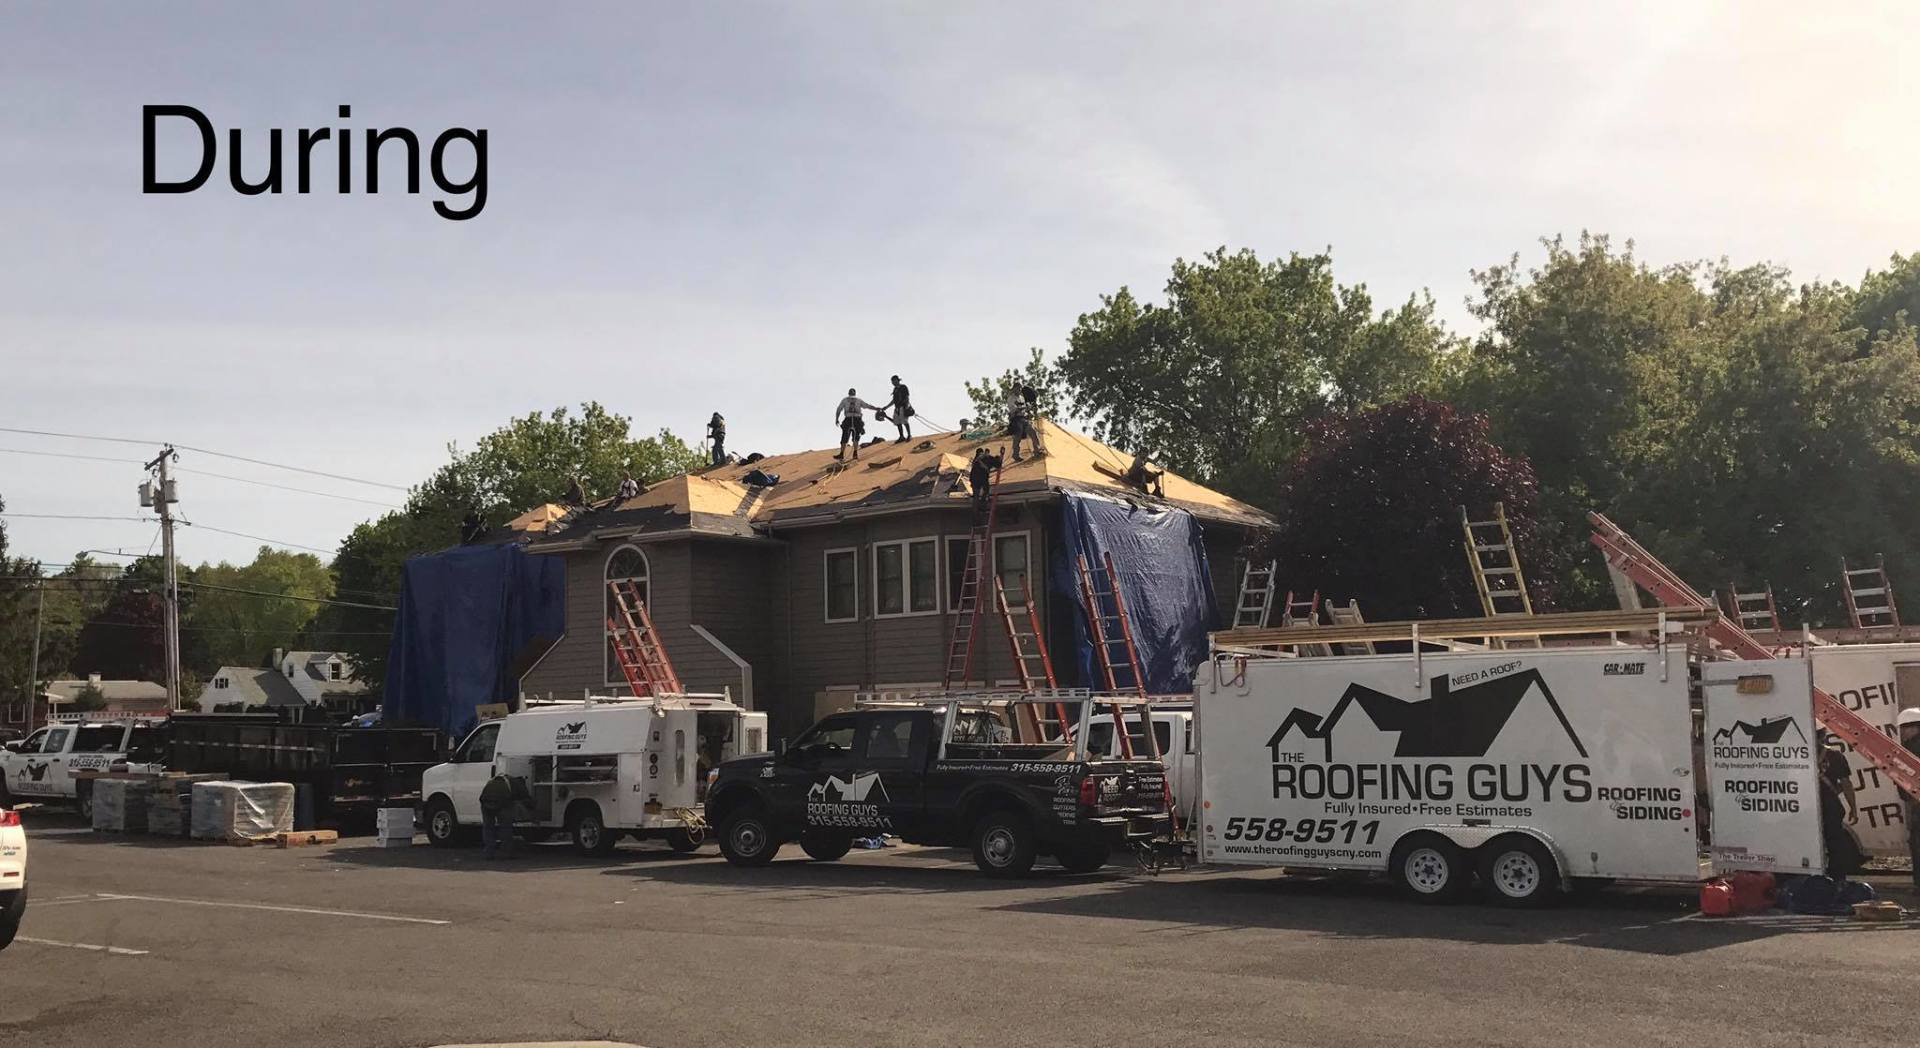 Roofing The Roofing Guys